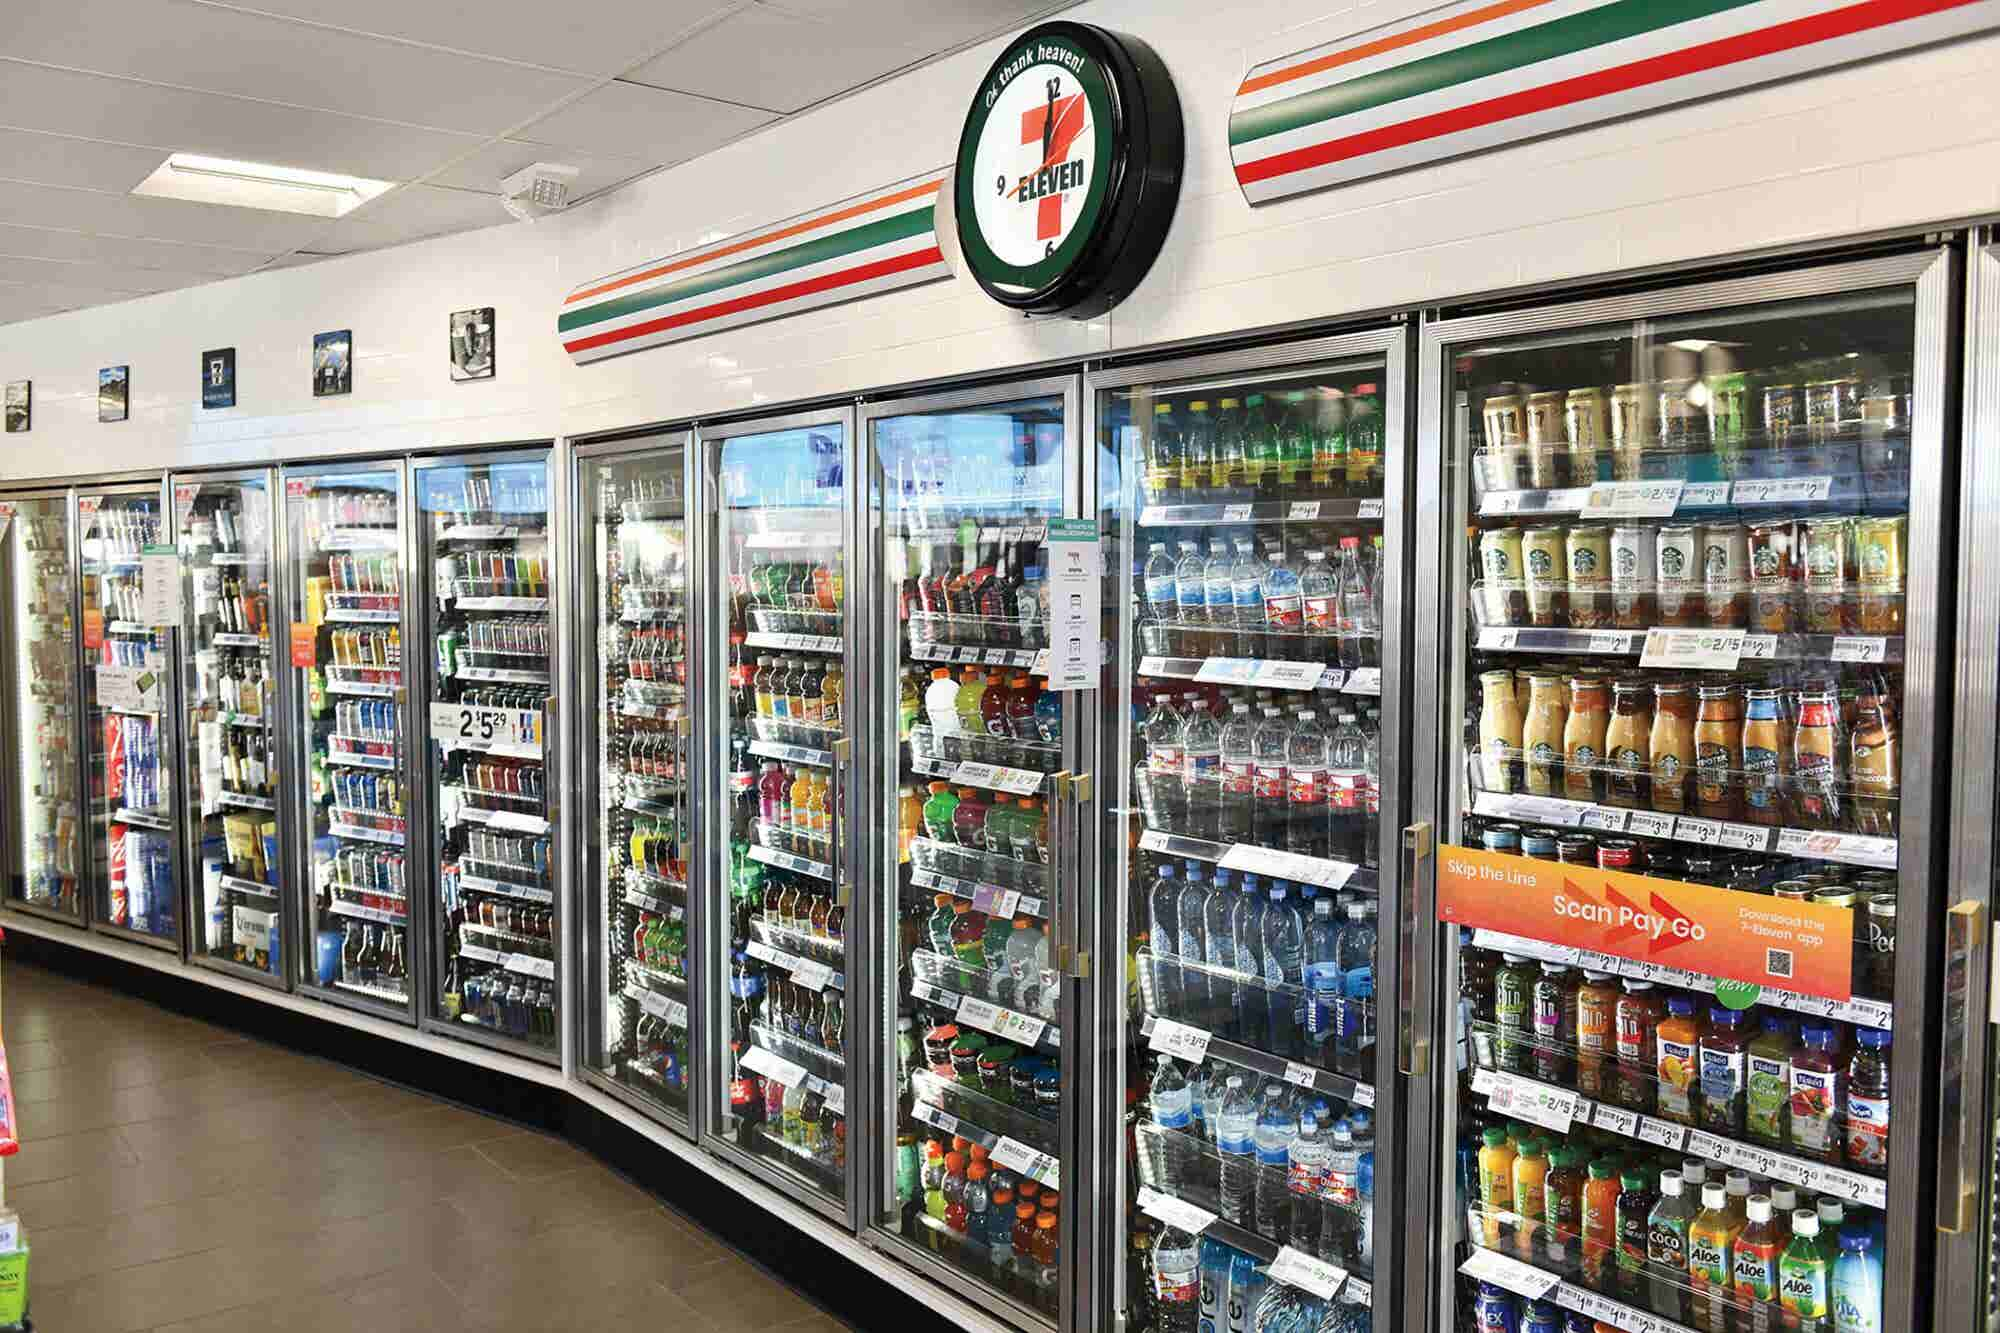 #10 on the Franchise 500: How 7-Eleven Plans to Double In Size In the...